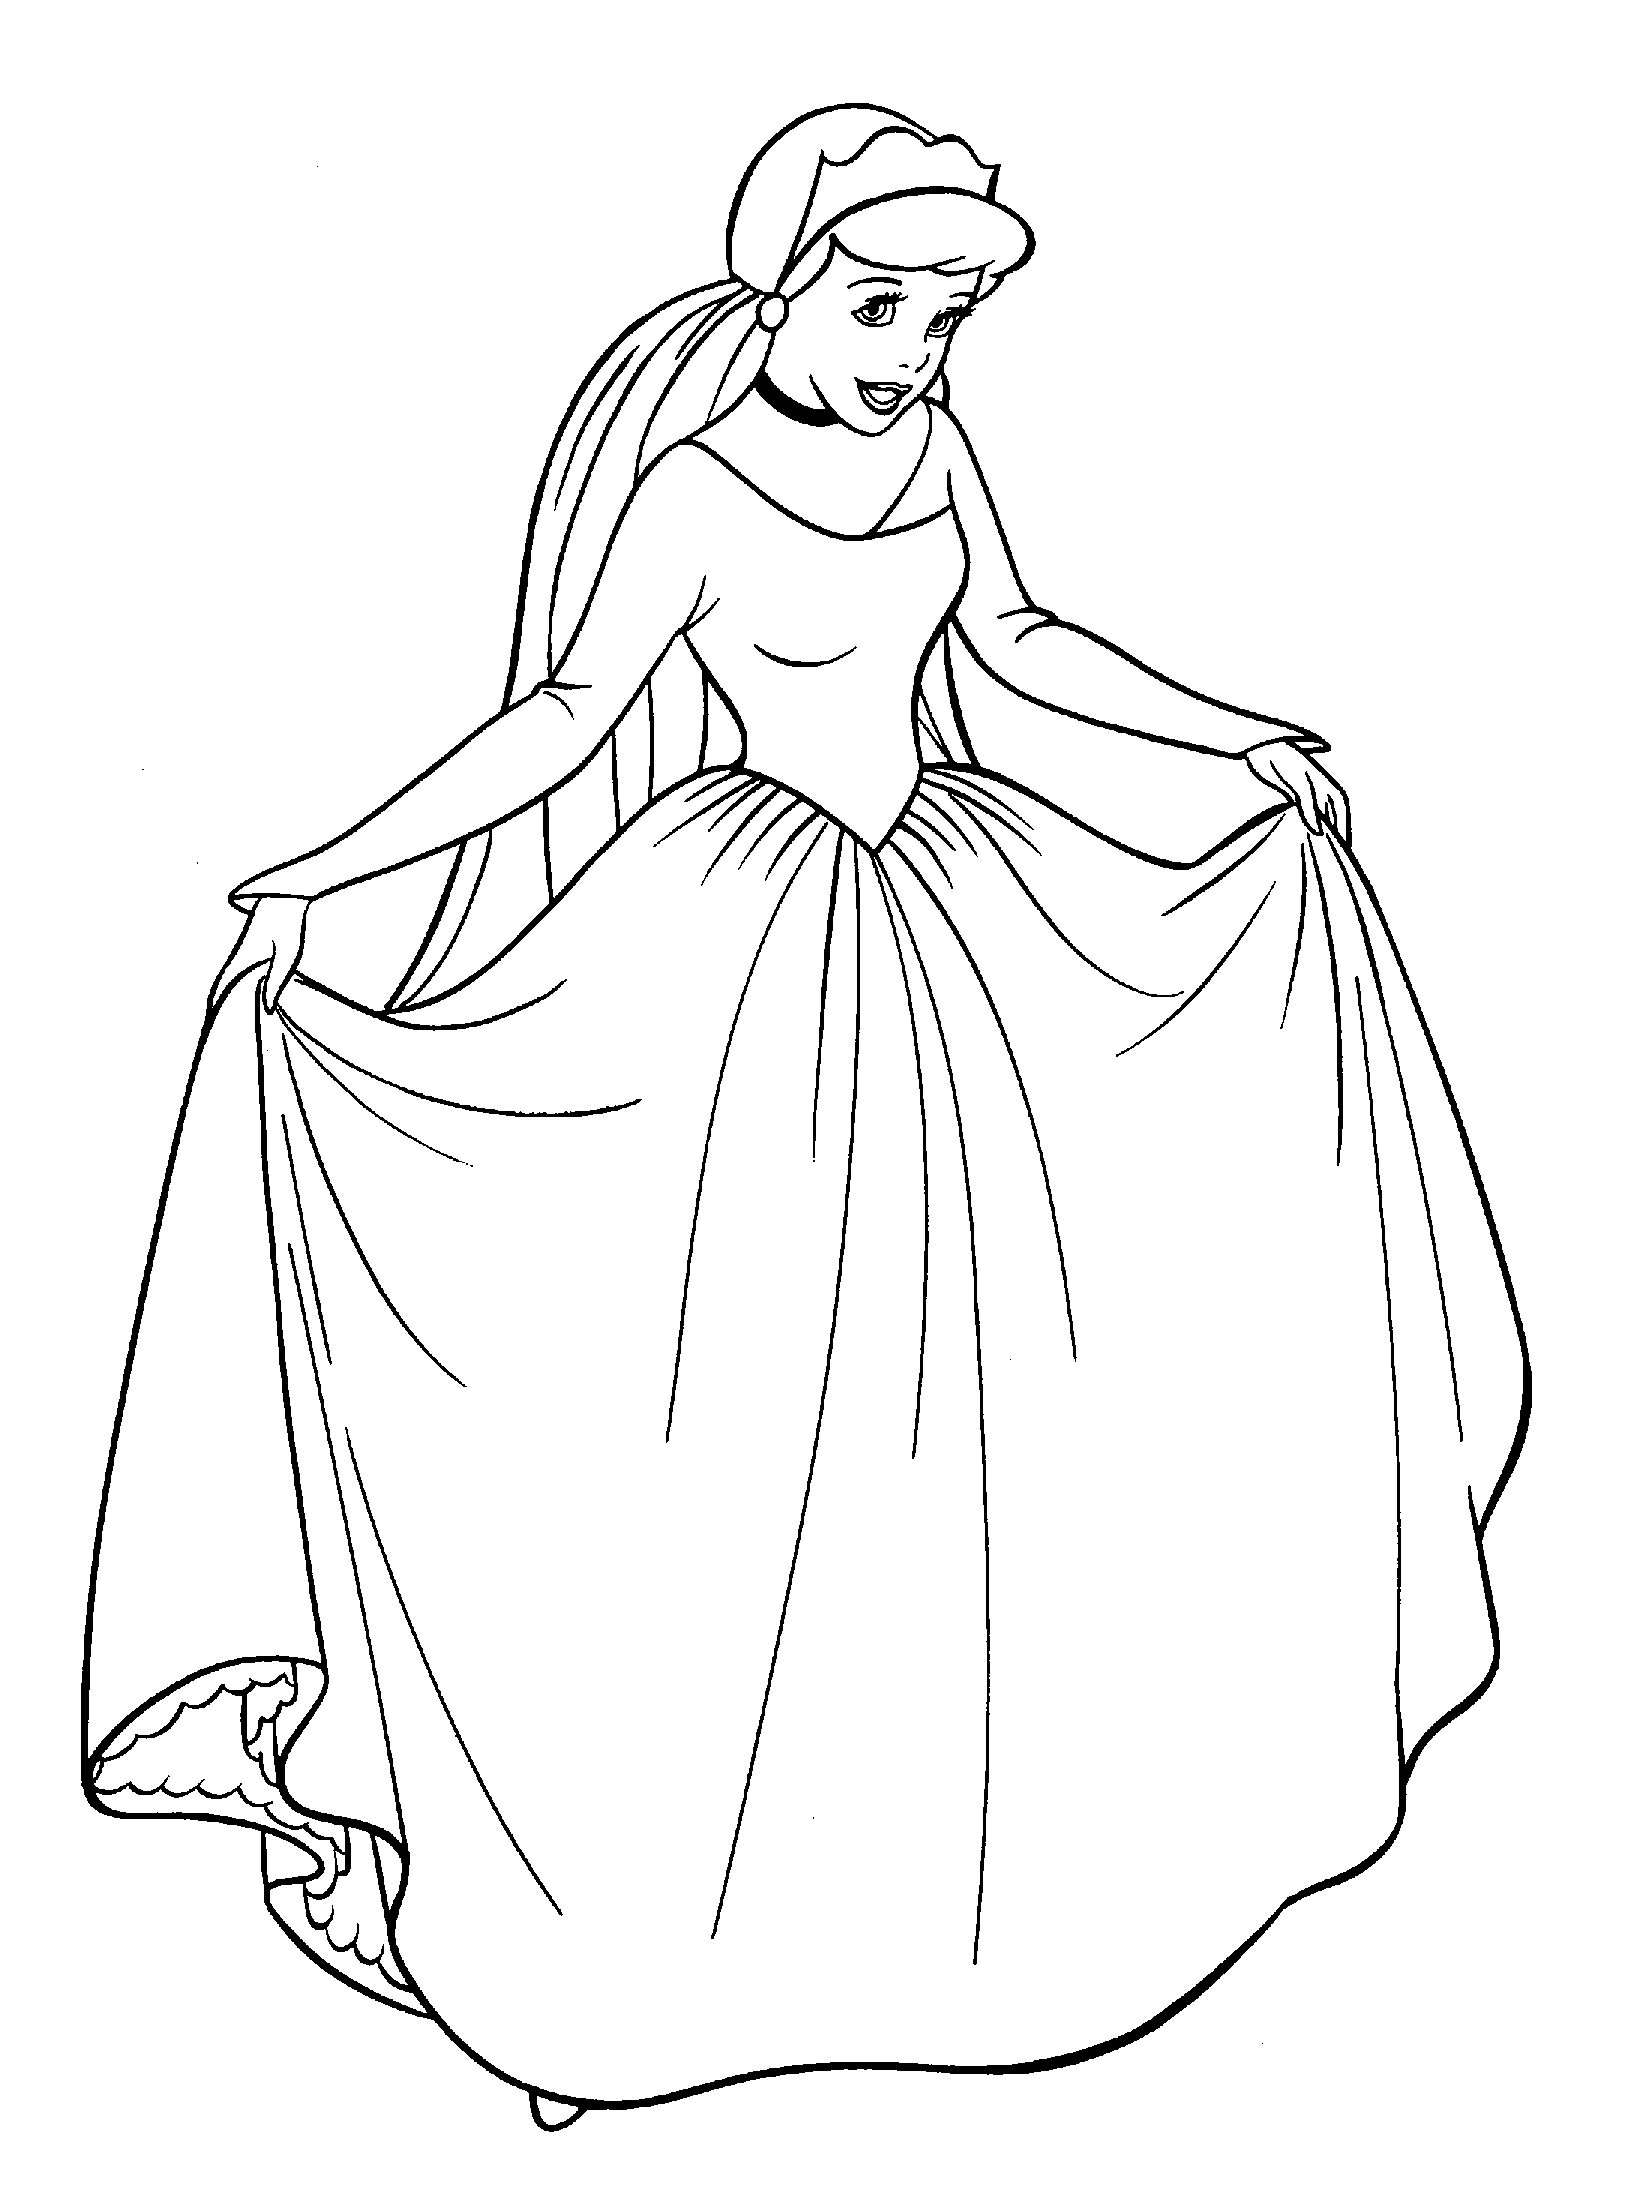 printable cinderella coloring pages printable cinderella coloring pages princess cinderella coloring pages princess cinderella coloring pages disney